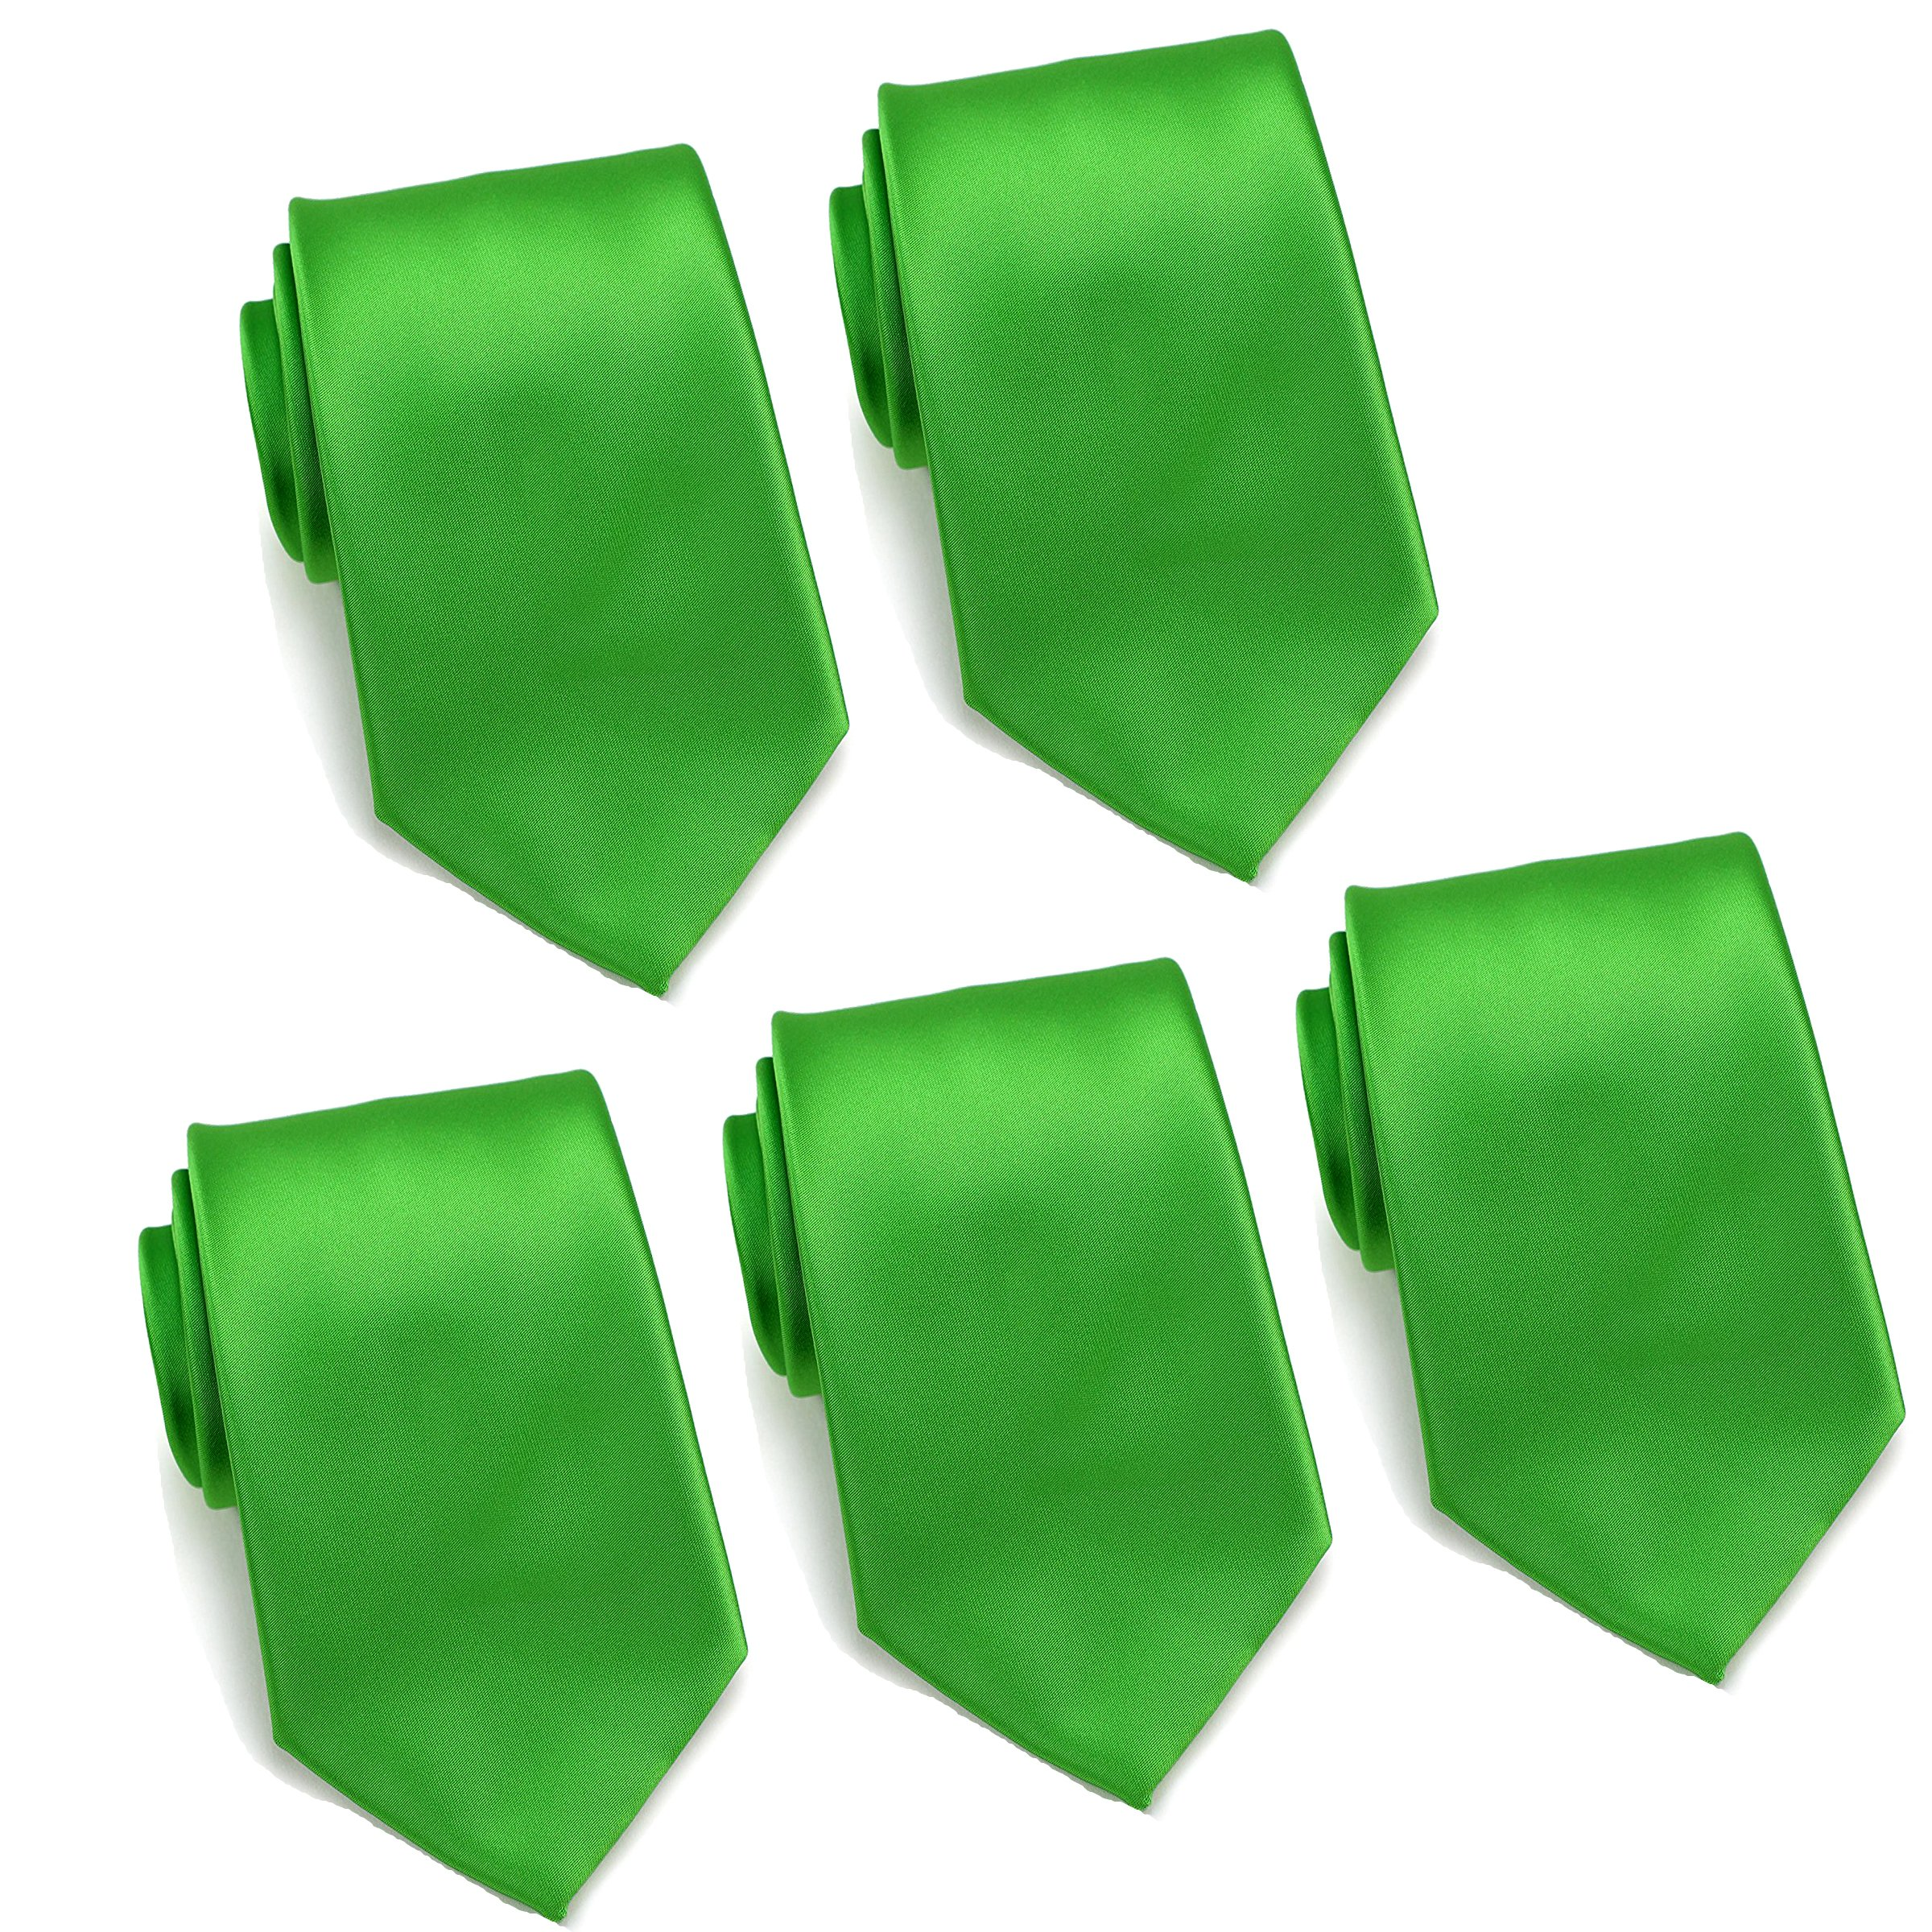 Mens Formal Tie Wholesale Lot of 5 Mens Solid Color Wedding Ties 3.5'' Satin Finish (Kelly Green)